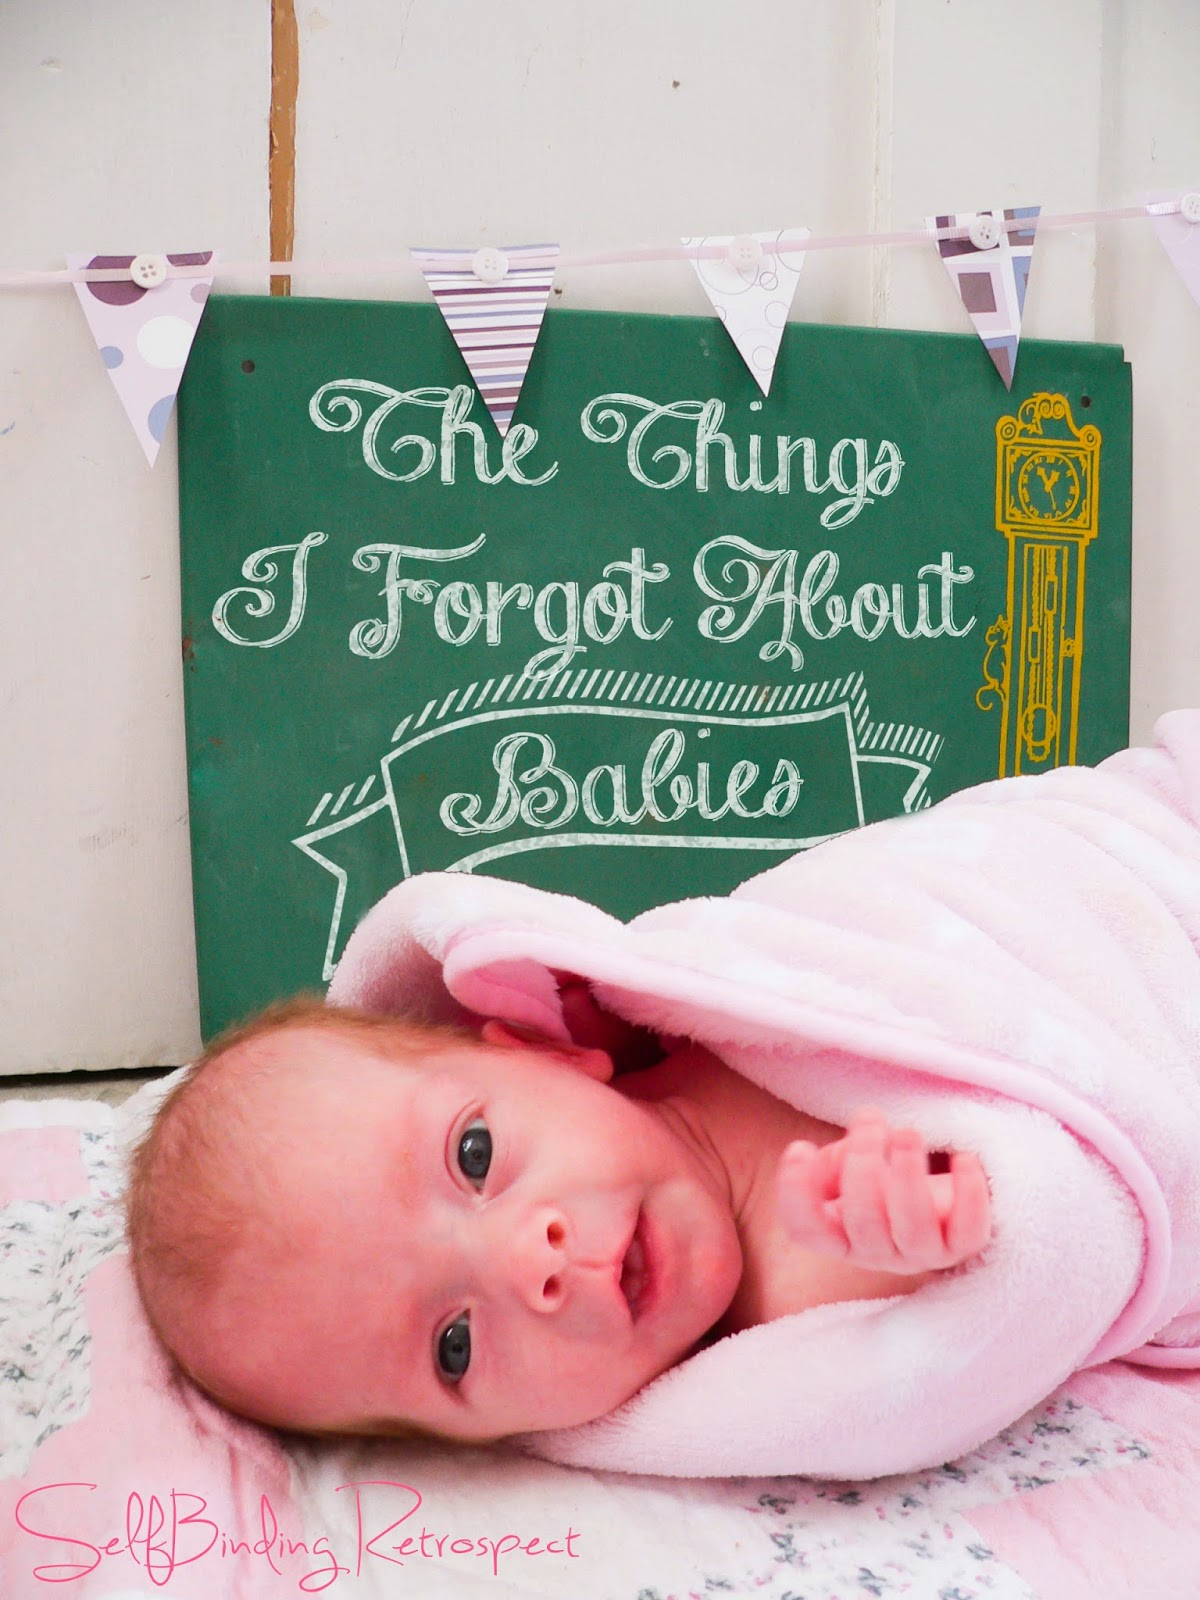 The Things I Forgot About Babies {Reminders For Care-Takers Who Have Been Out Of The Baby Game For Too Long} - Alanna Rusnak, SelfBinding Retrospect